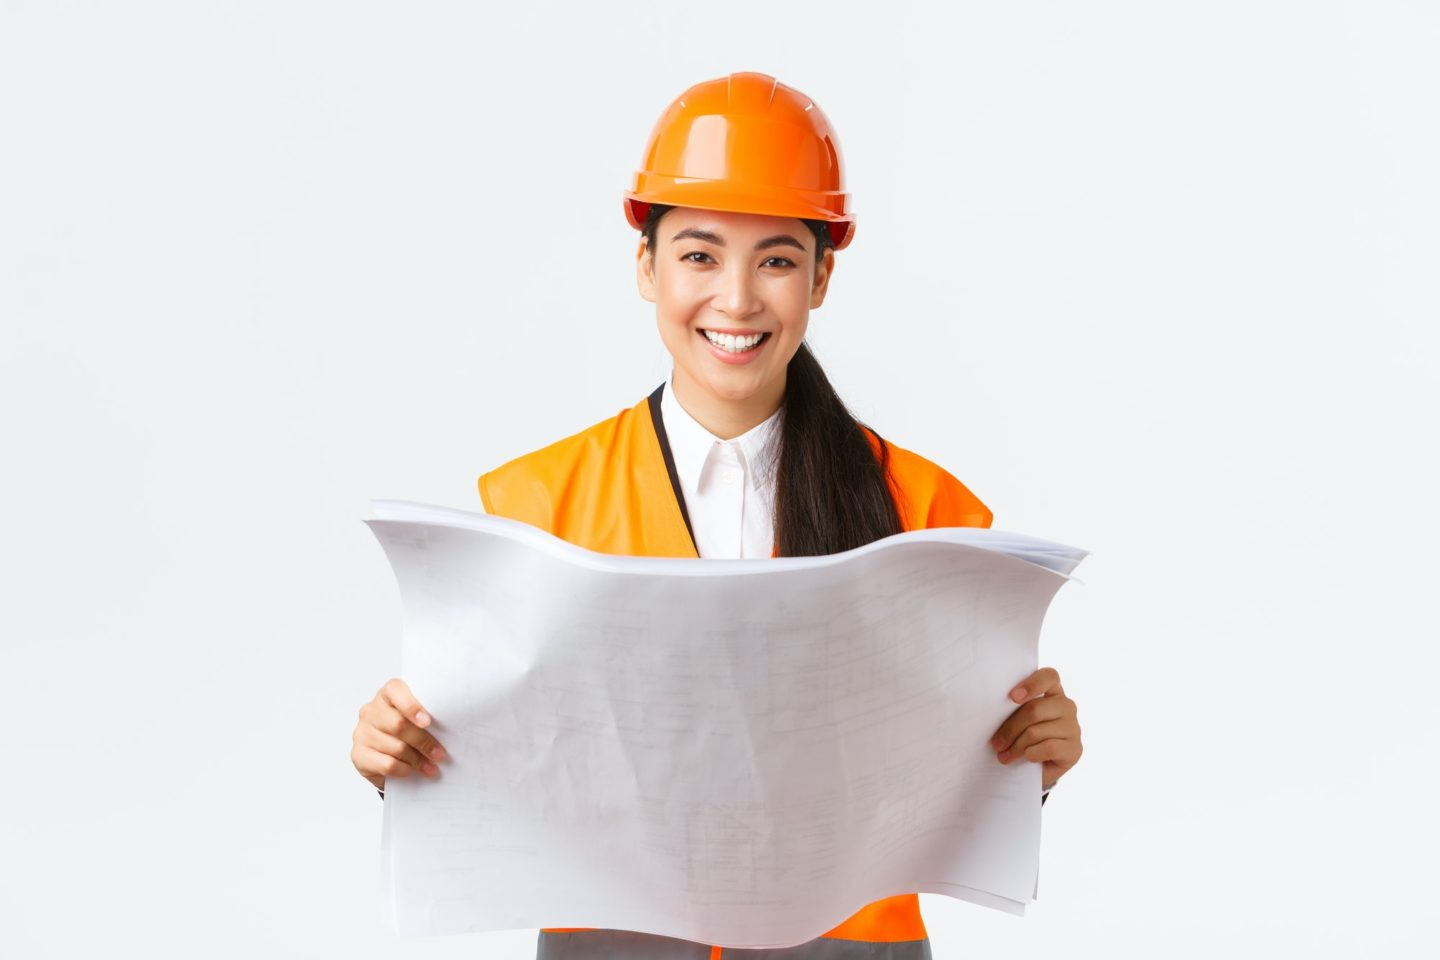 Smiling pretty asian female architect, industrial woman in safety helmet and reflective jacket